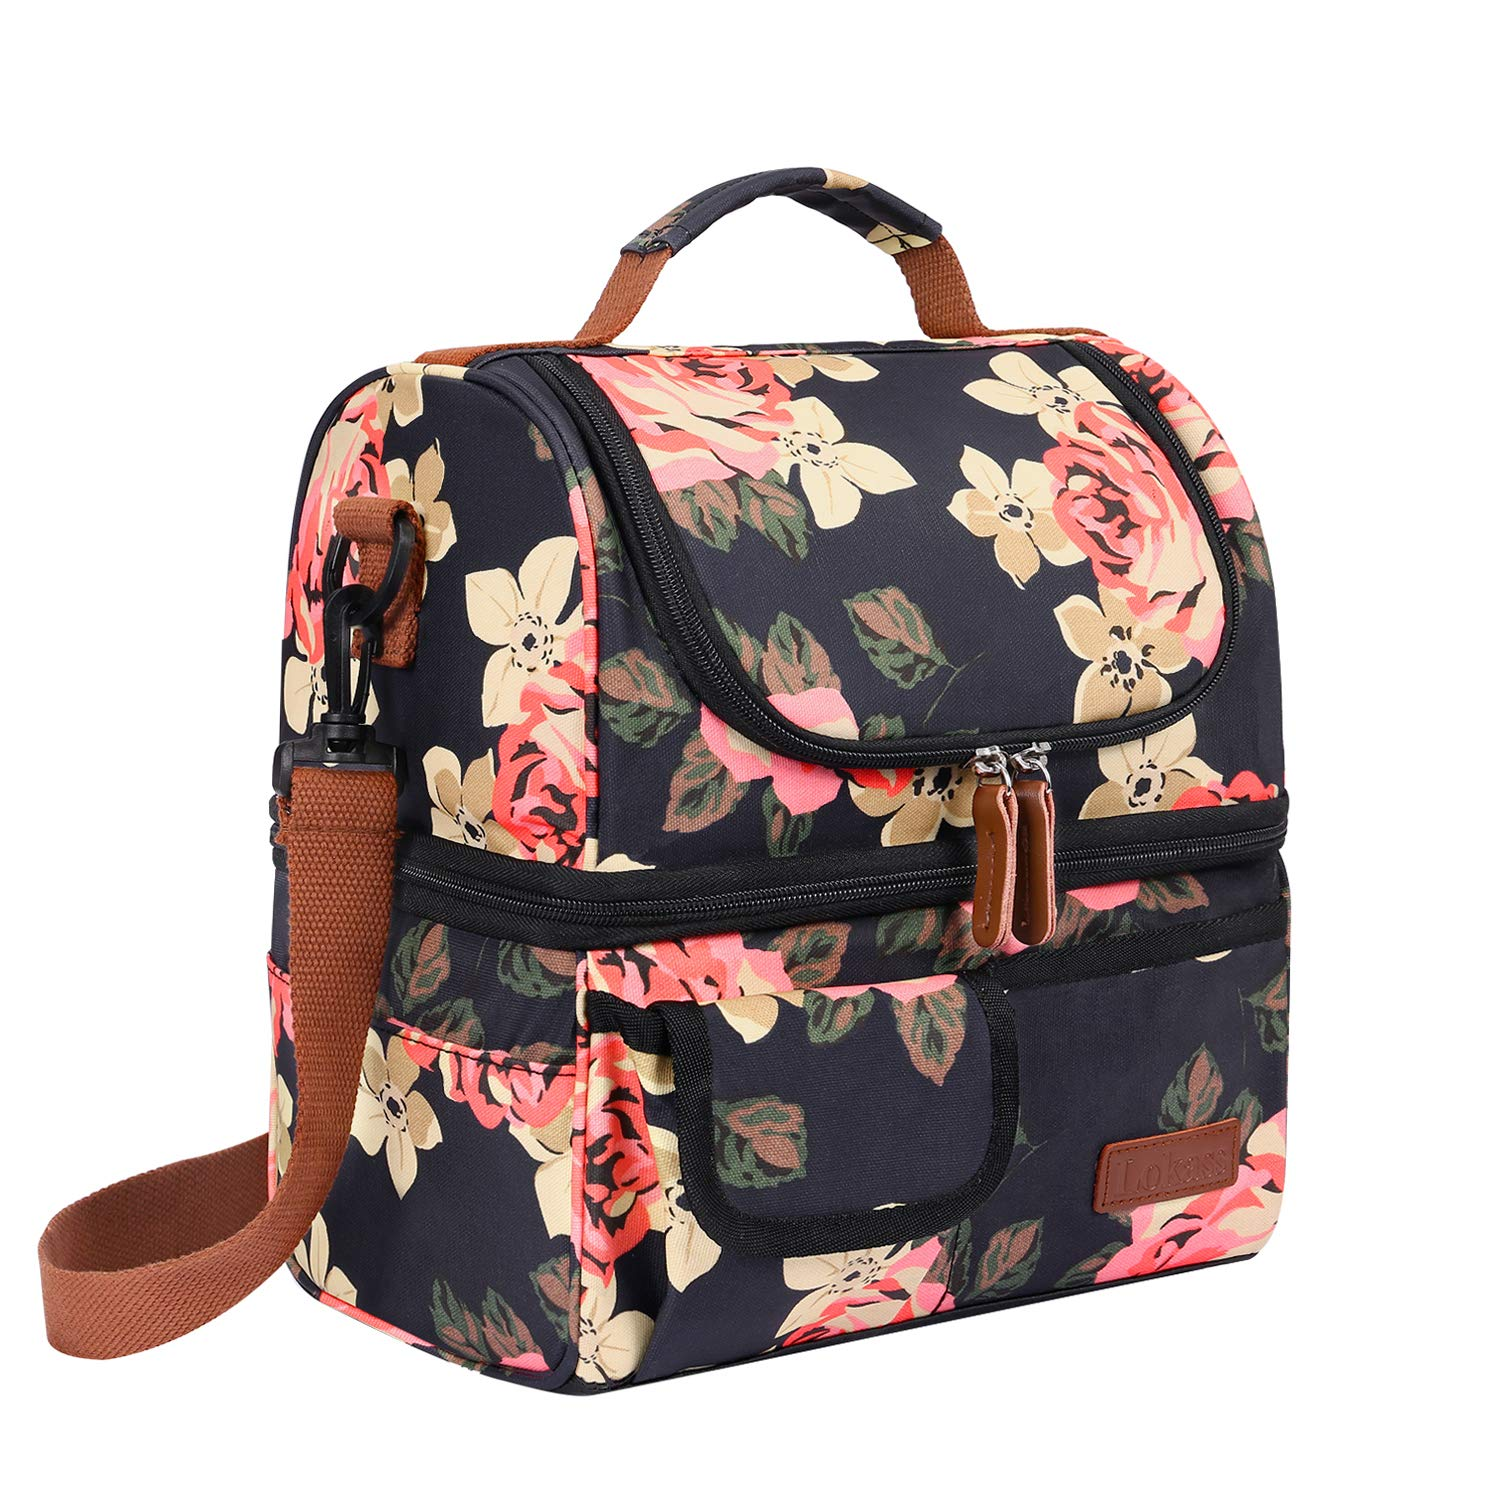 LOKASS Lunch Bags for Women Double Deck Insulated Lunch Box Large Cooler Tote Bag with Removable Shoulder Strap Wide Open Thermal Meal Prep Lunch Organizer Box for Adults/Work/Outdoor, Black Peony